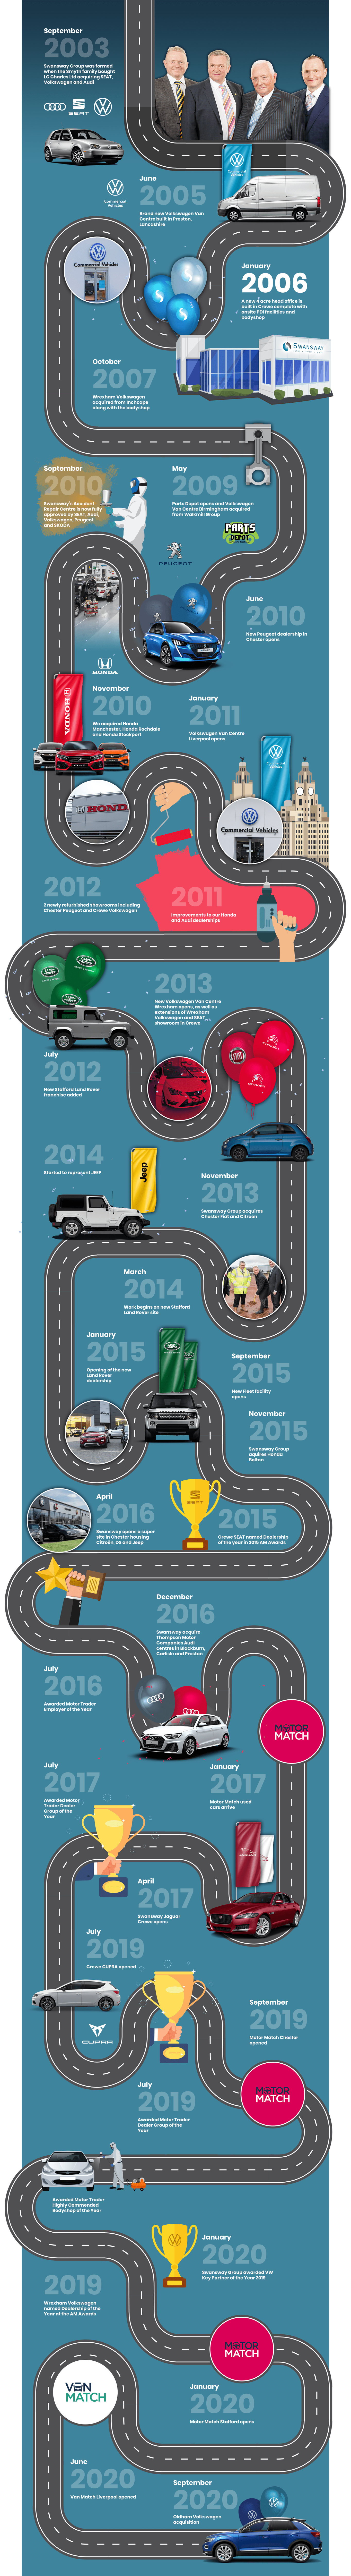 History of Swansway group timeline, featuring dealership openings and business expansions